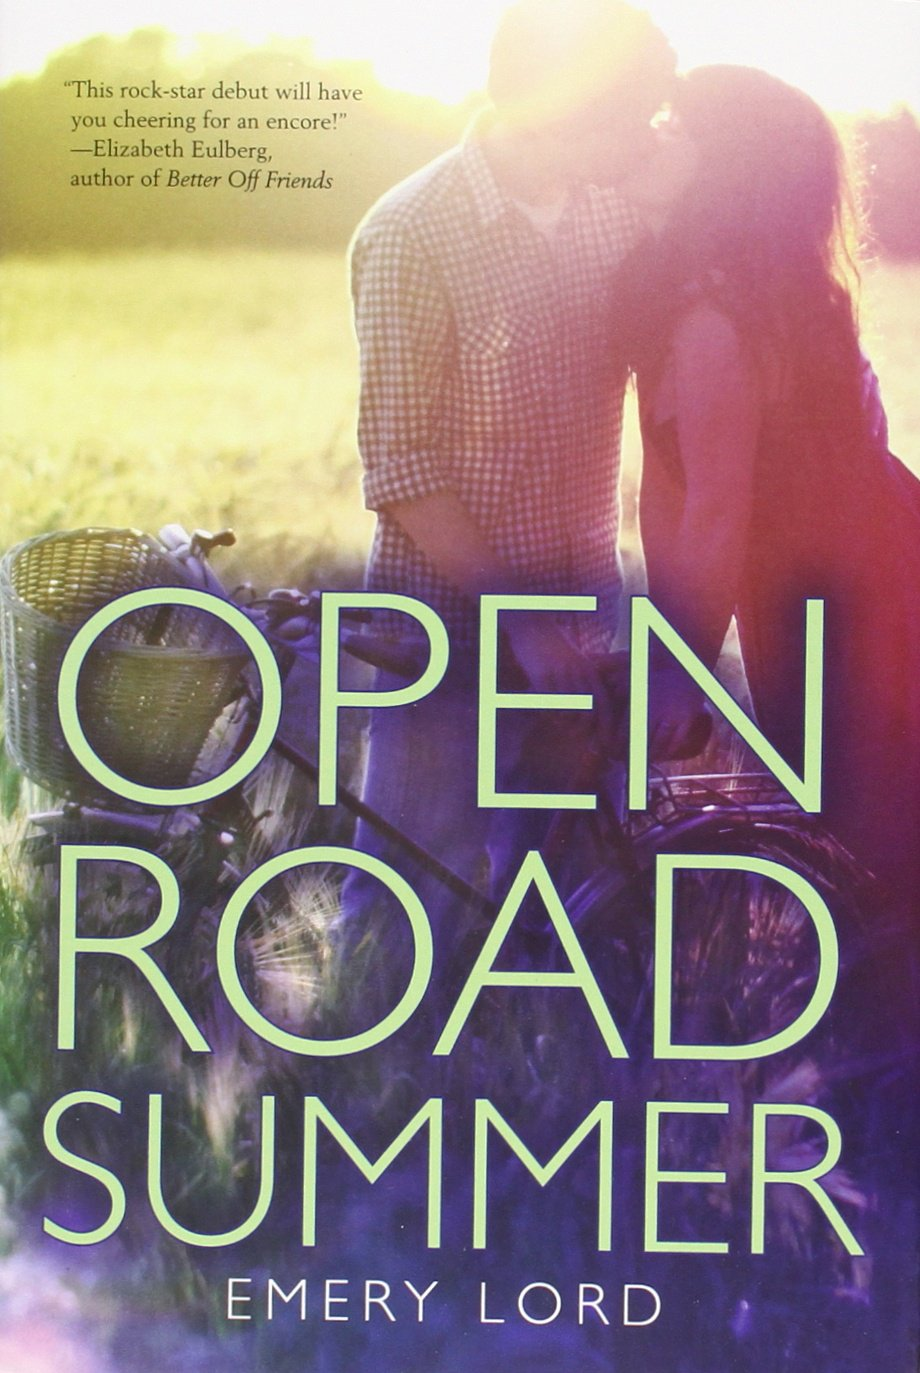 BWW Review: OPEN ROAD SUMMER by Emery Lord